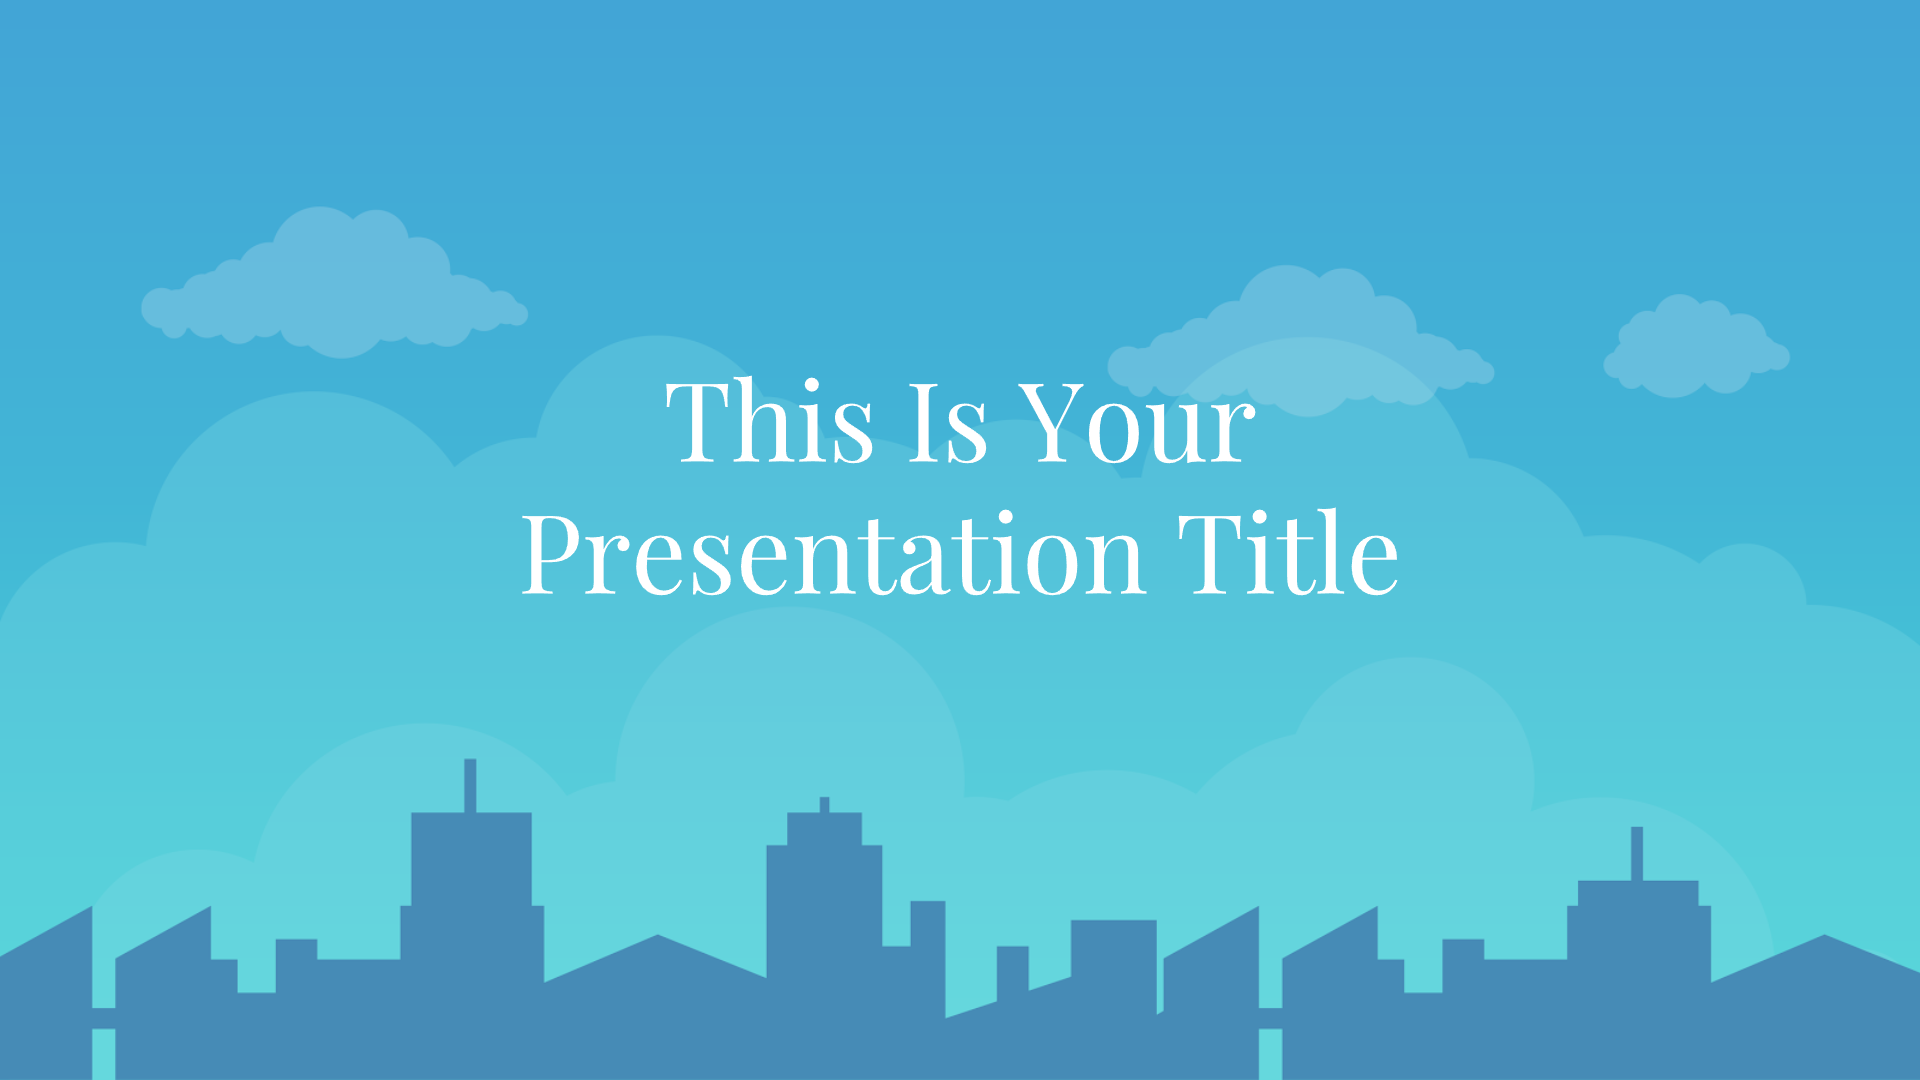 f6a7dfb6d0 Top 69 Best Free Keynote Templates (Updated March 2019)